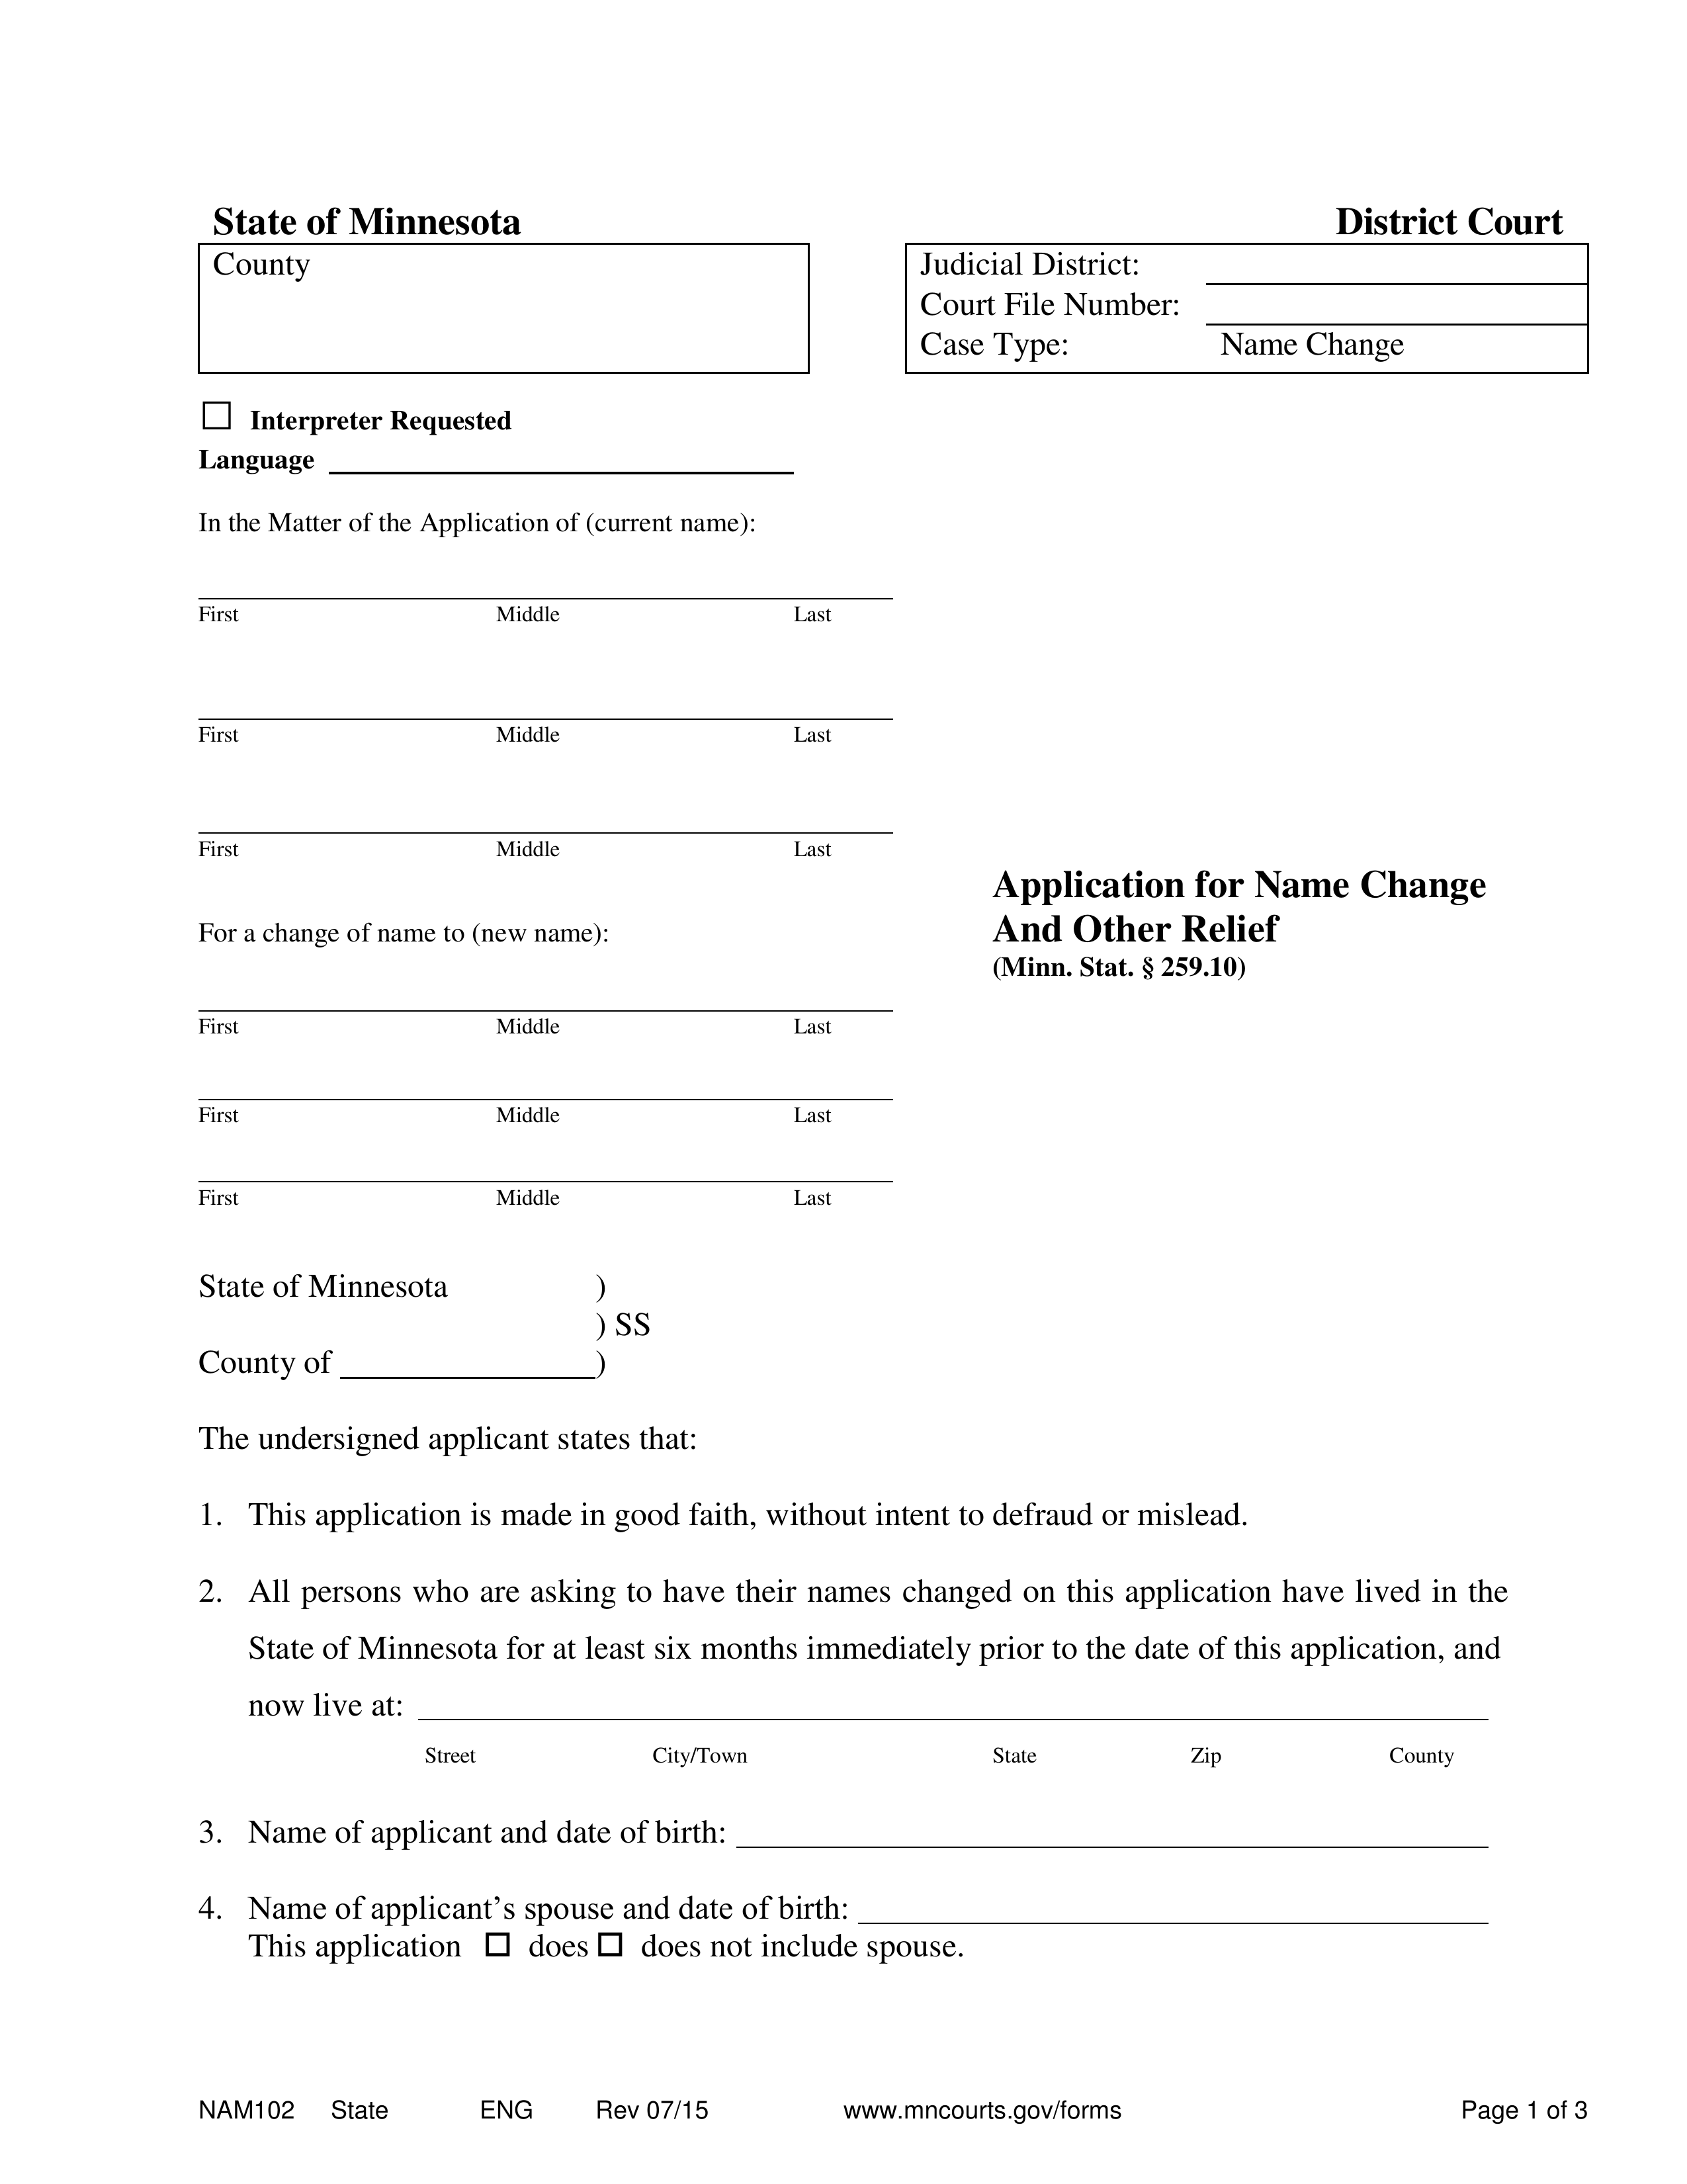 Good Faith Marriage Affidavit Letter Sample Pdf from eforms.com